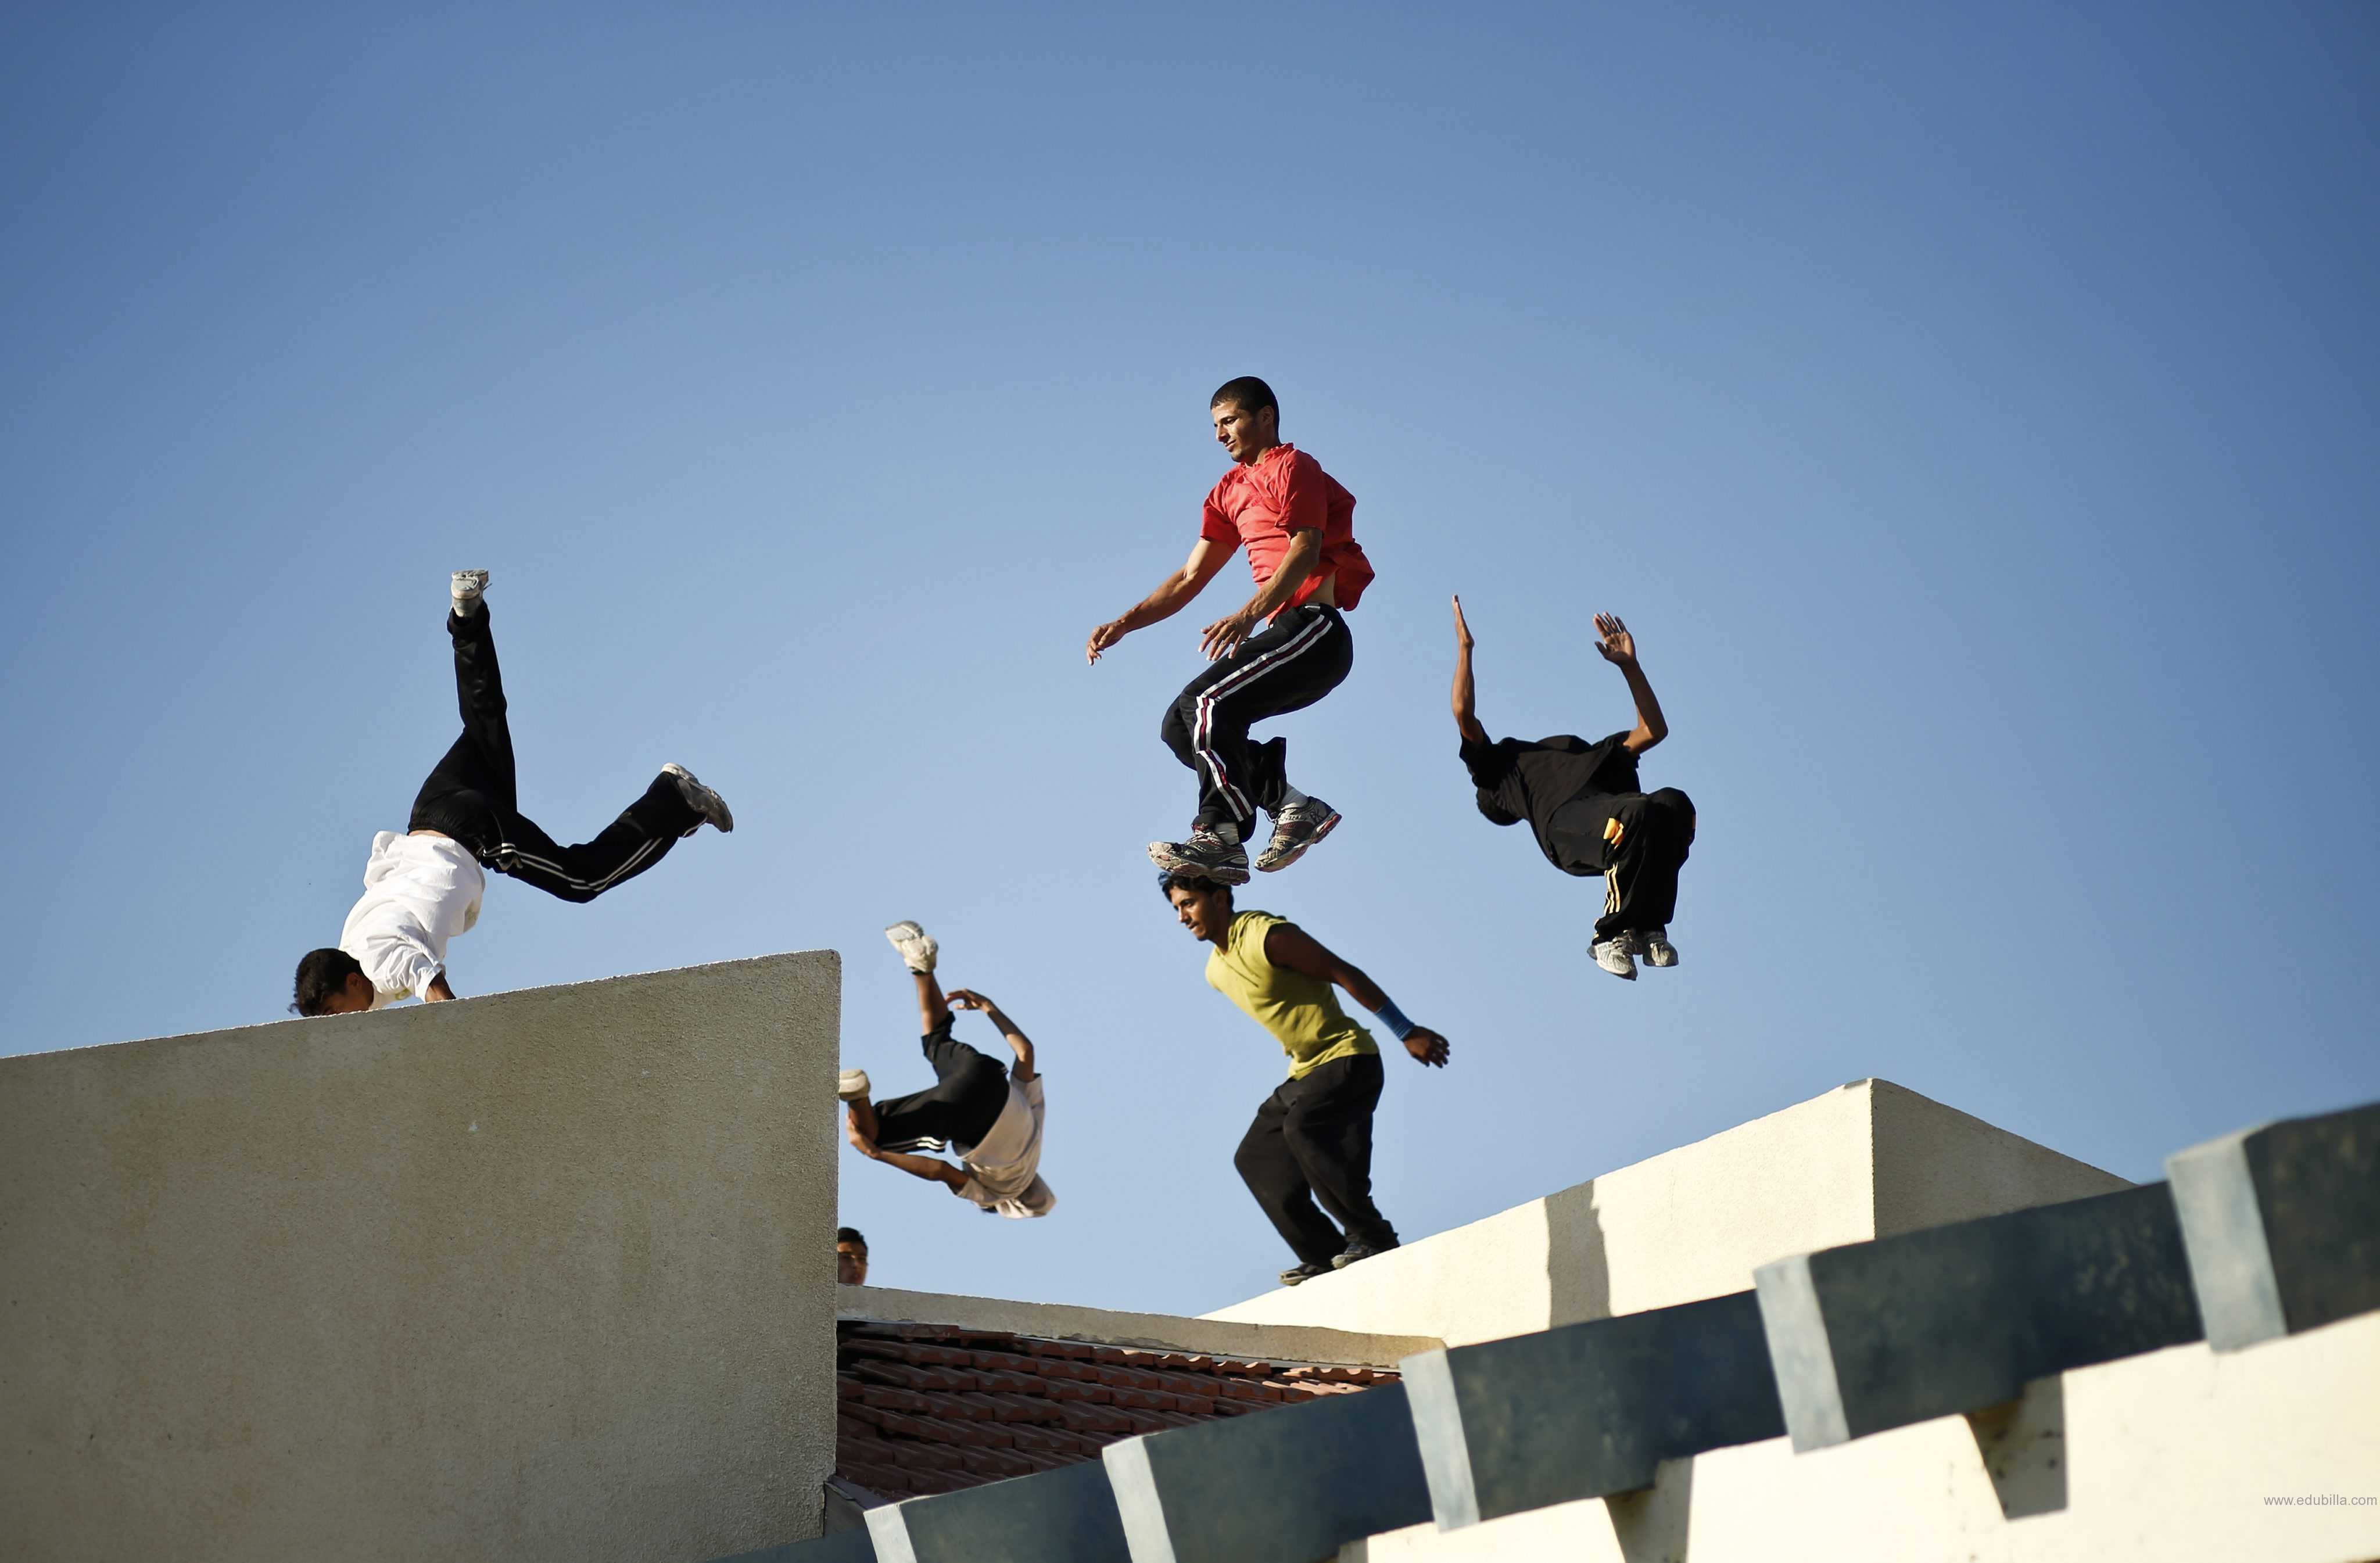 essay parkour Parkour training focuses on safety, longevity, personal responsibility, and self-improvement it discourages reckless behavior, showing off, and dangerous stunts parkour practitioners value community, humility, positive collaboration, sharing of knowledge, and the importance of play in human life, while demonstrating respect for.